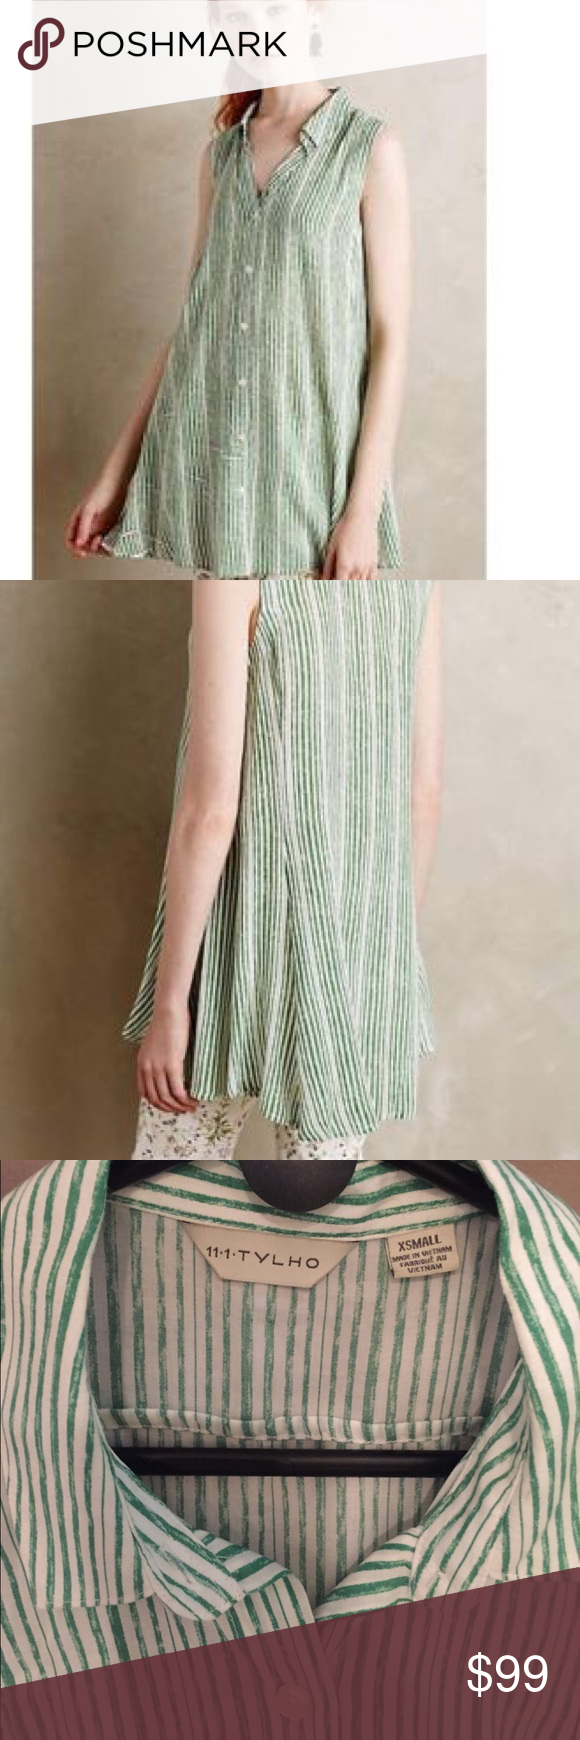 Green and white short dress   TYLHO XS Percy tunicdress  white wgreen  Anthropologie